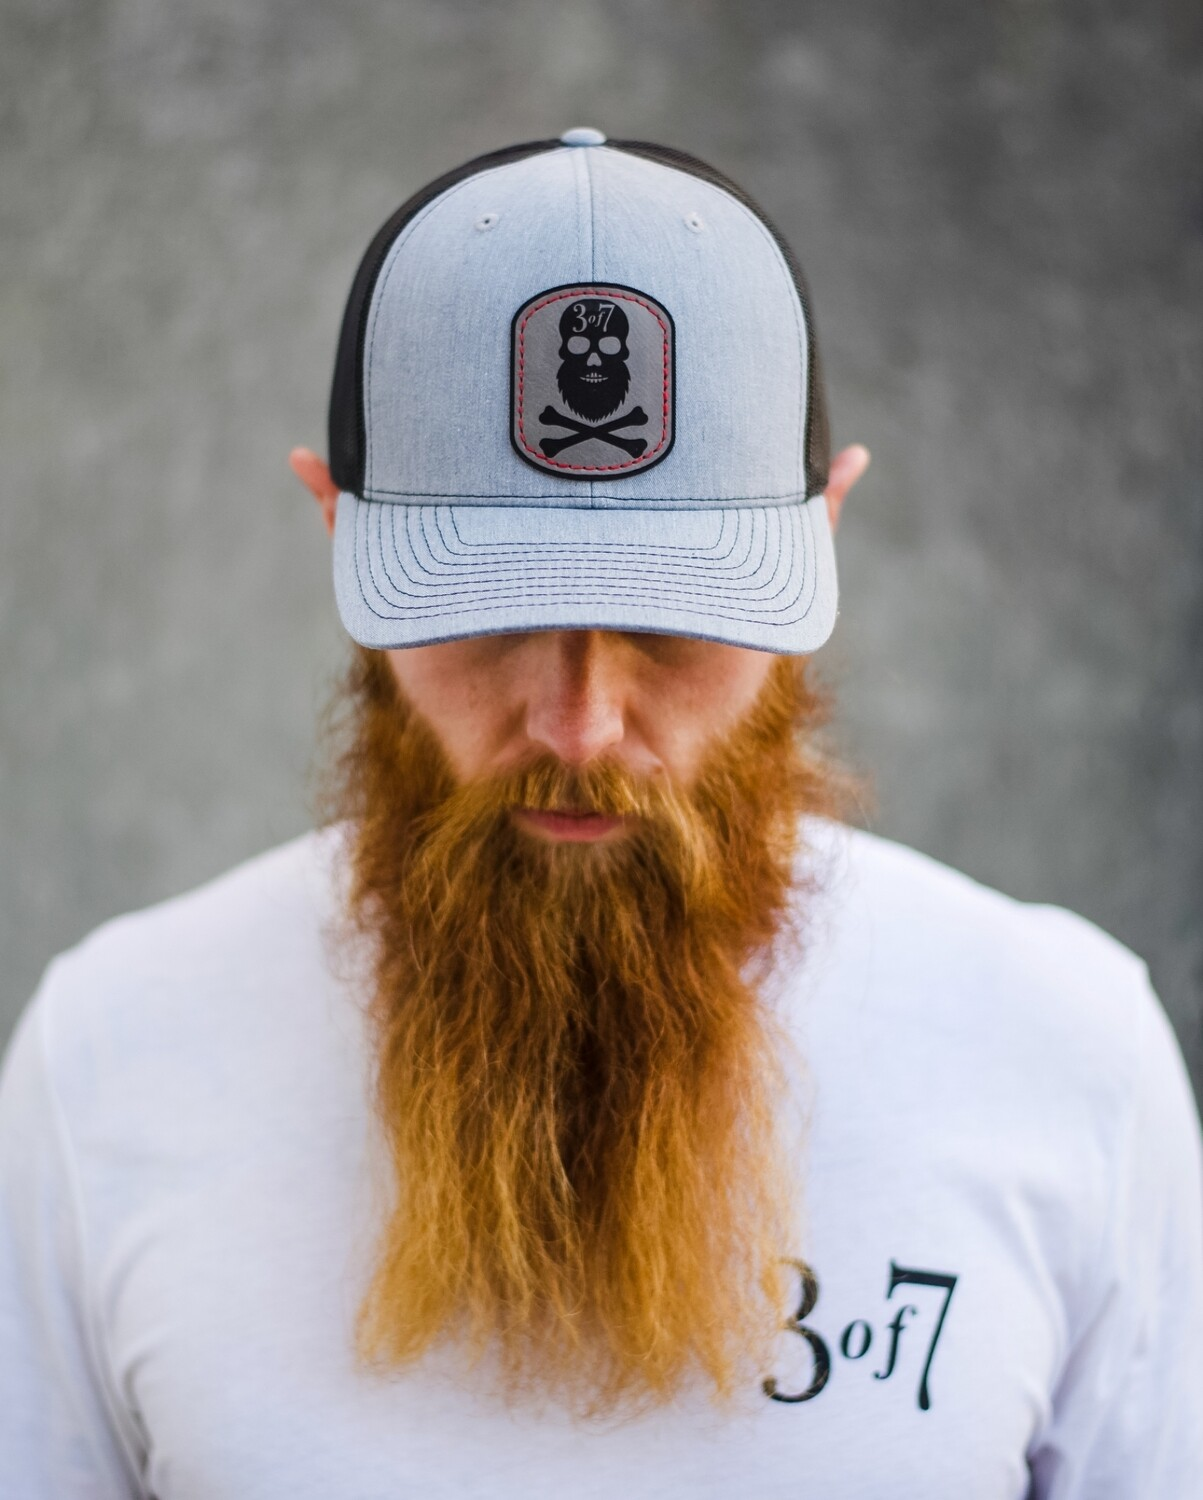 3 of 7 patch hat (beard skull)